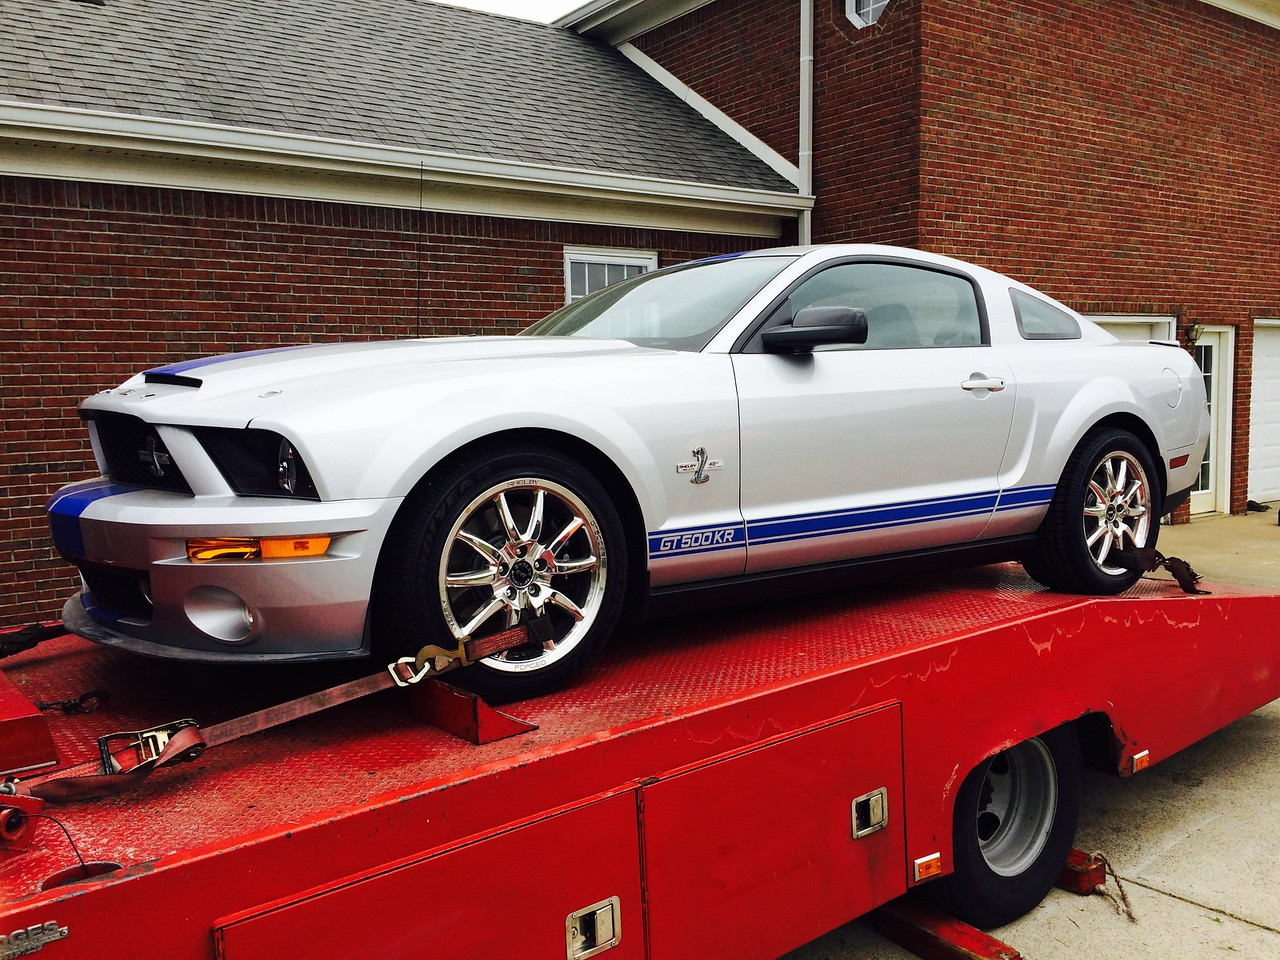 2008 Shelby GT500KR 40th Anniversary Edition (Clarksville, Tennessee to Nashville,Tennessee)